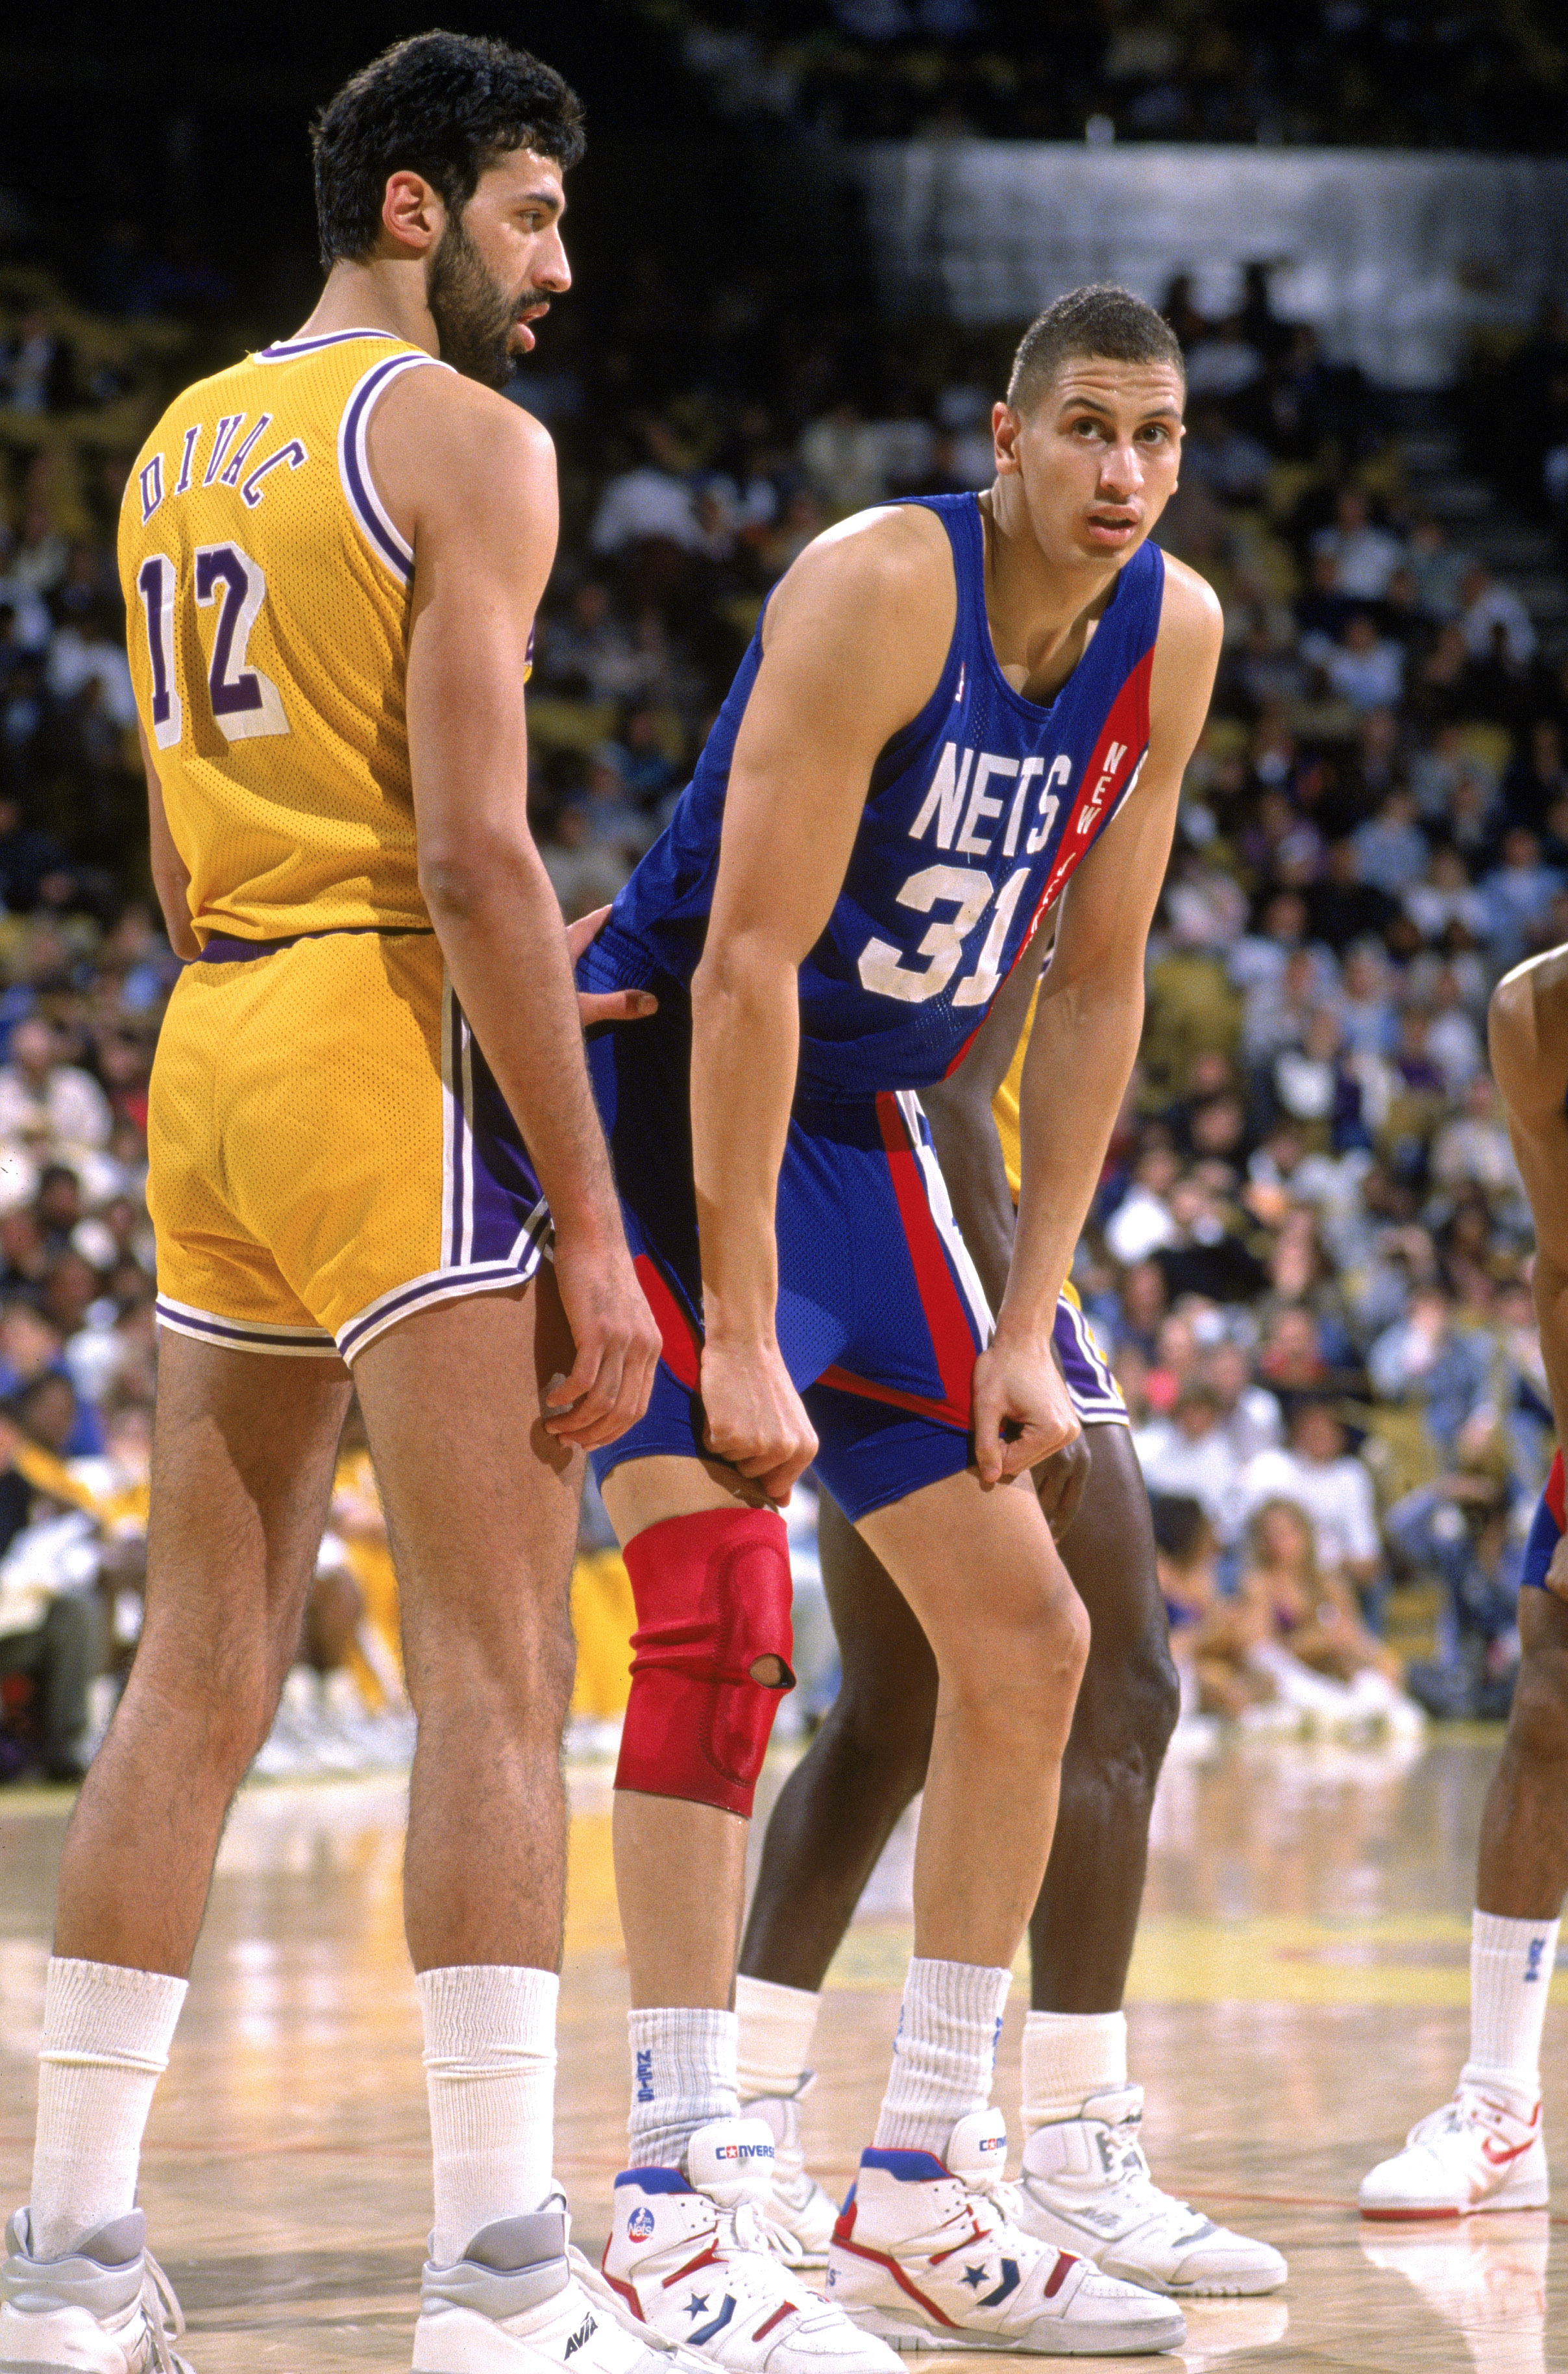 LOS ANGELES - 1990:  Sam Bowie #31 of the New Jersey Nets stands ready for play next to Vlade Divac #12 of the Los Angeles Lakers during the NBA game at the Great Western Forum in Los Angeles, California in 1990. NOTE TO USER: User expressly acknowledges